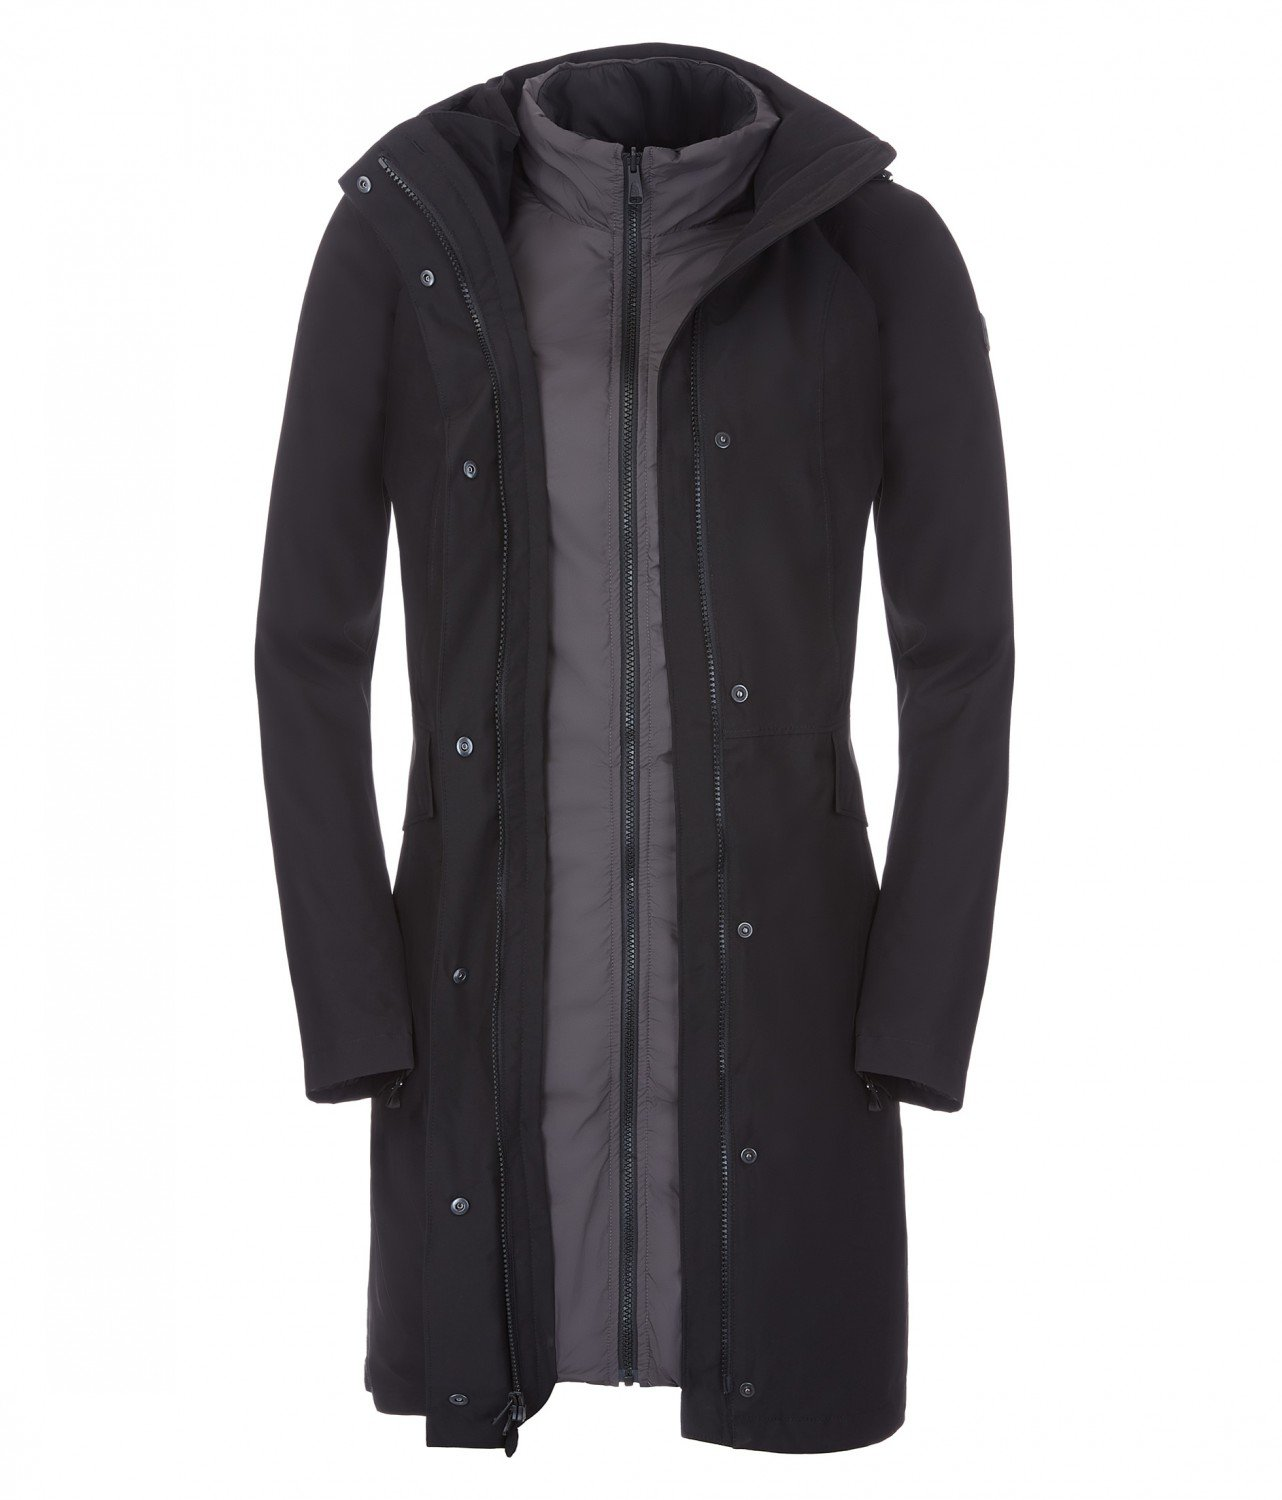 northface long coat